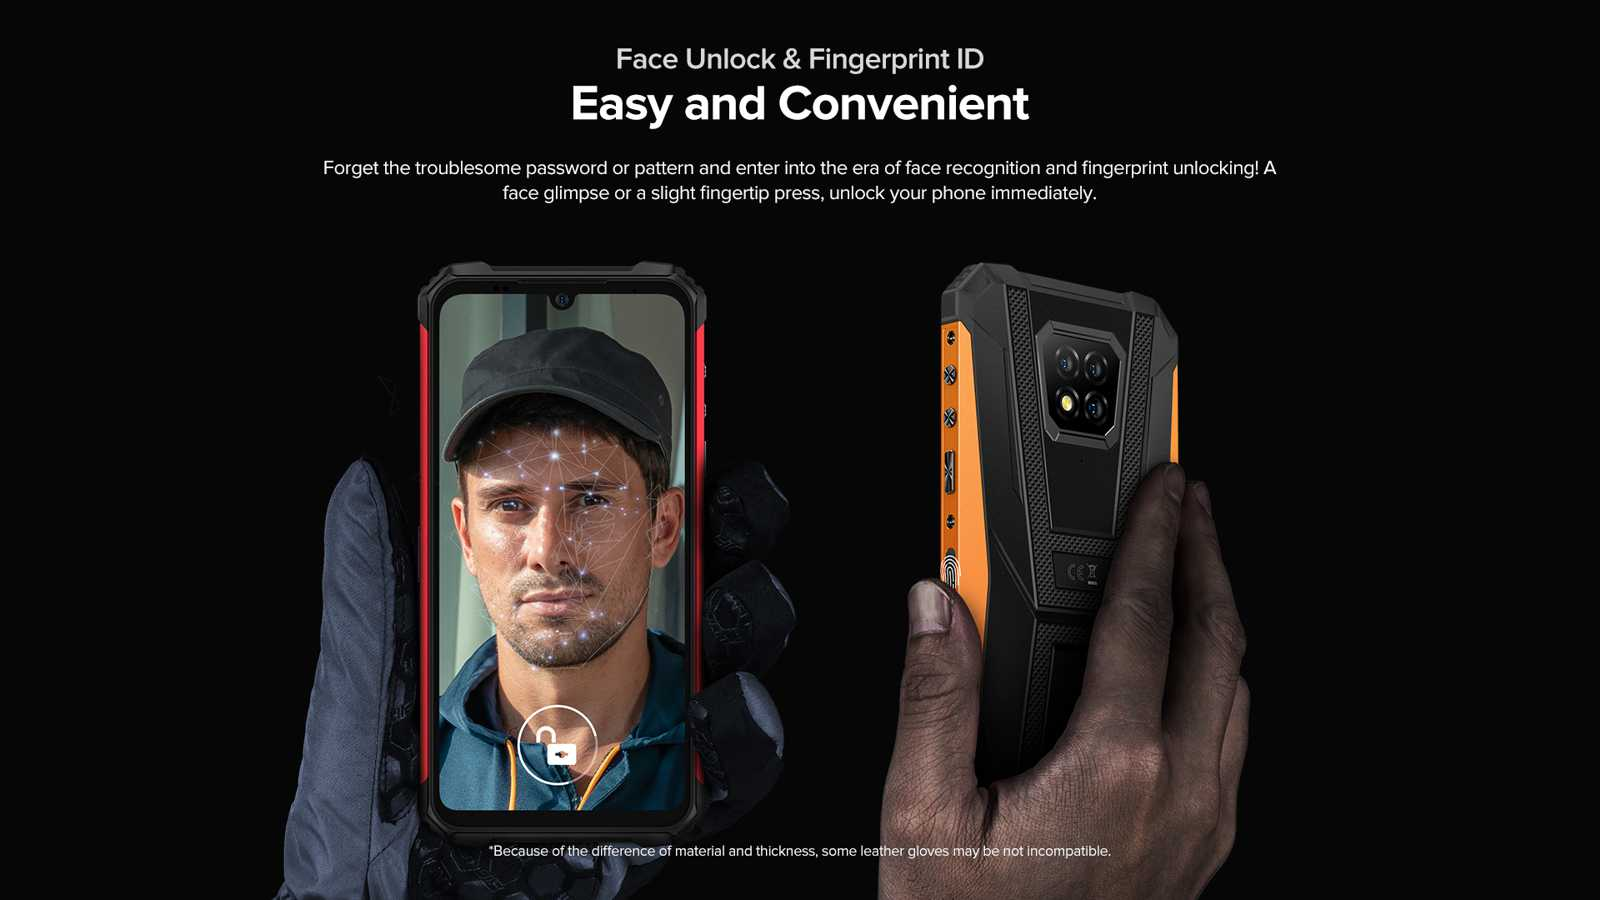 Armor 8 fingerprint and facial recognition